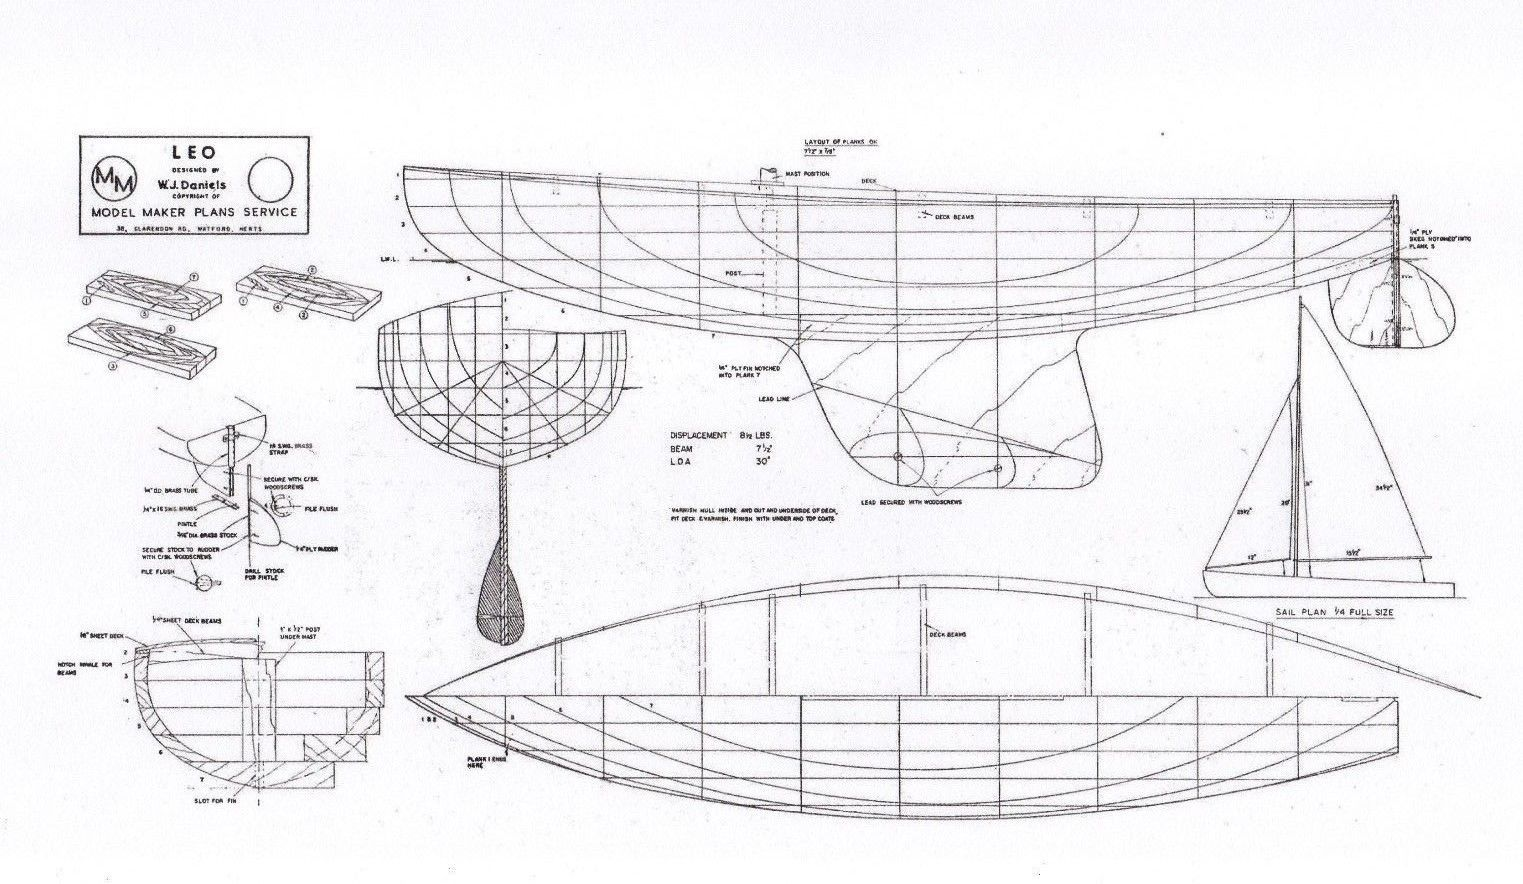 Full Size Plan For Leo 30 Inch Model Racing Pond Yacht